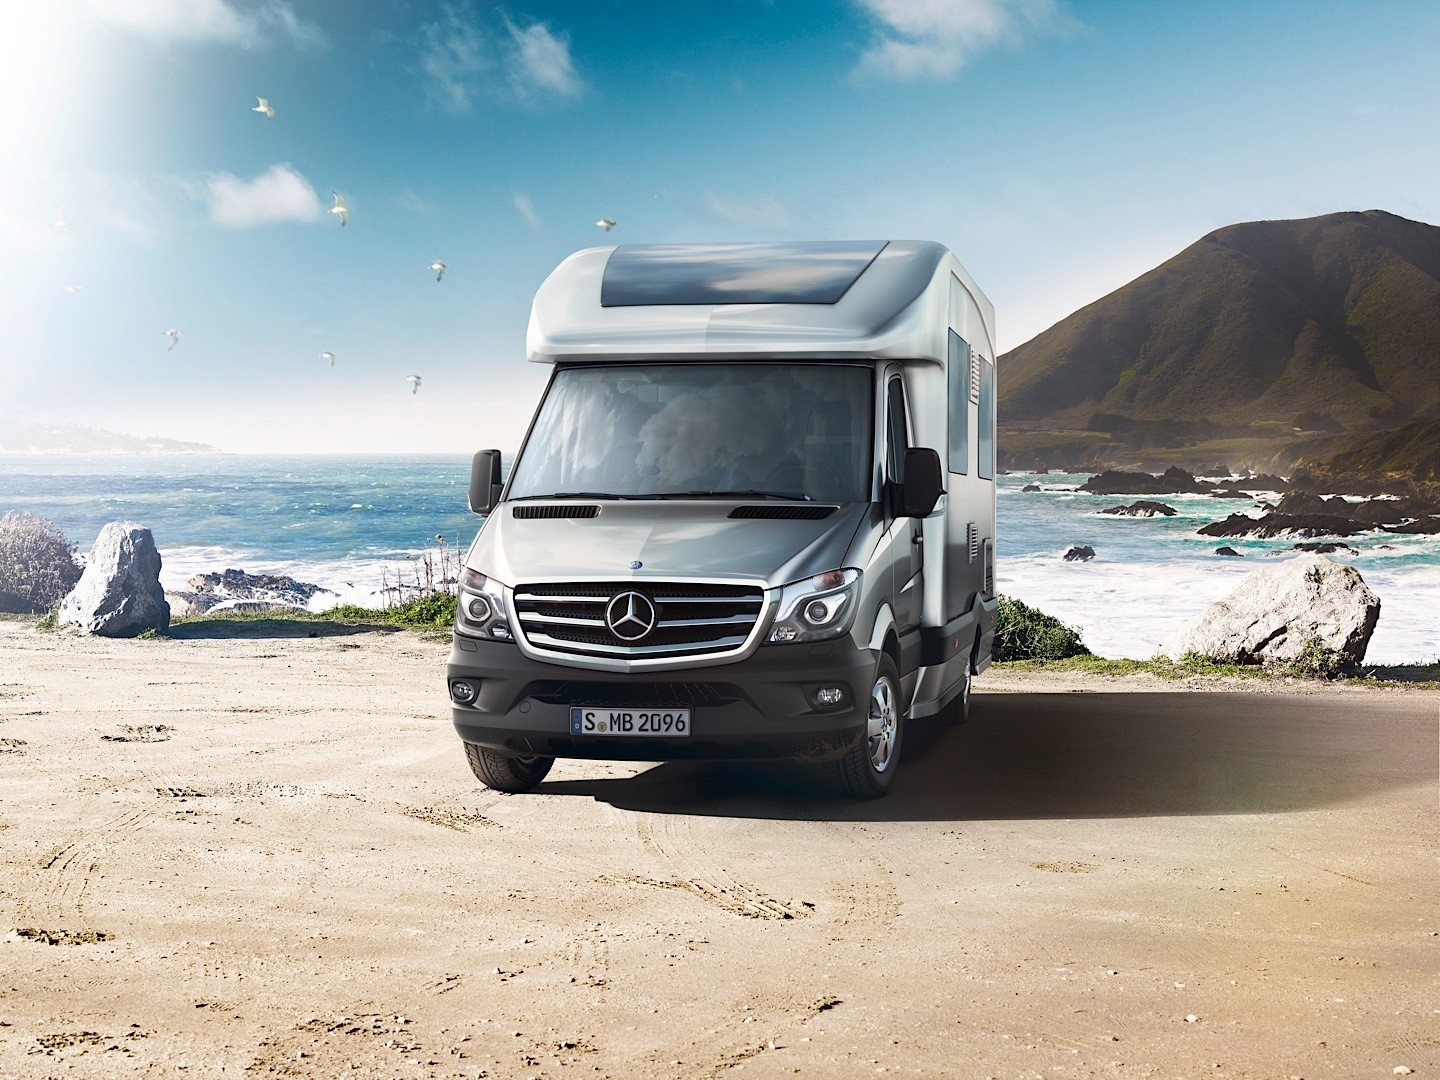 Mercedes benz takes over the 2013 caravan salon for Mercedes benz caravan